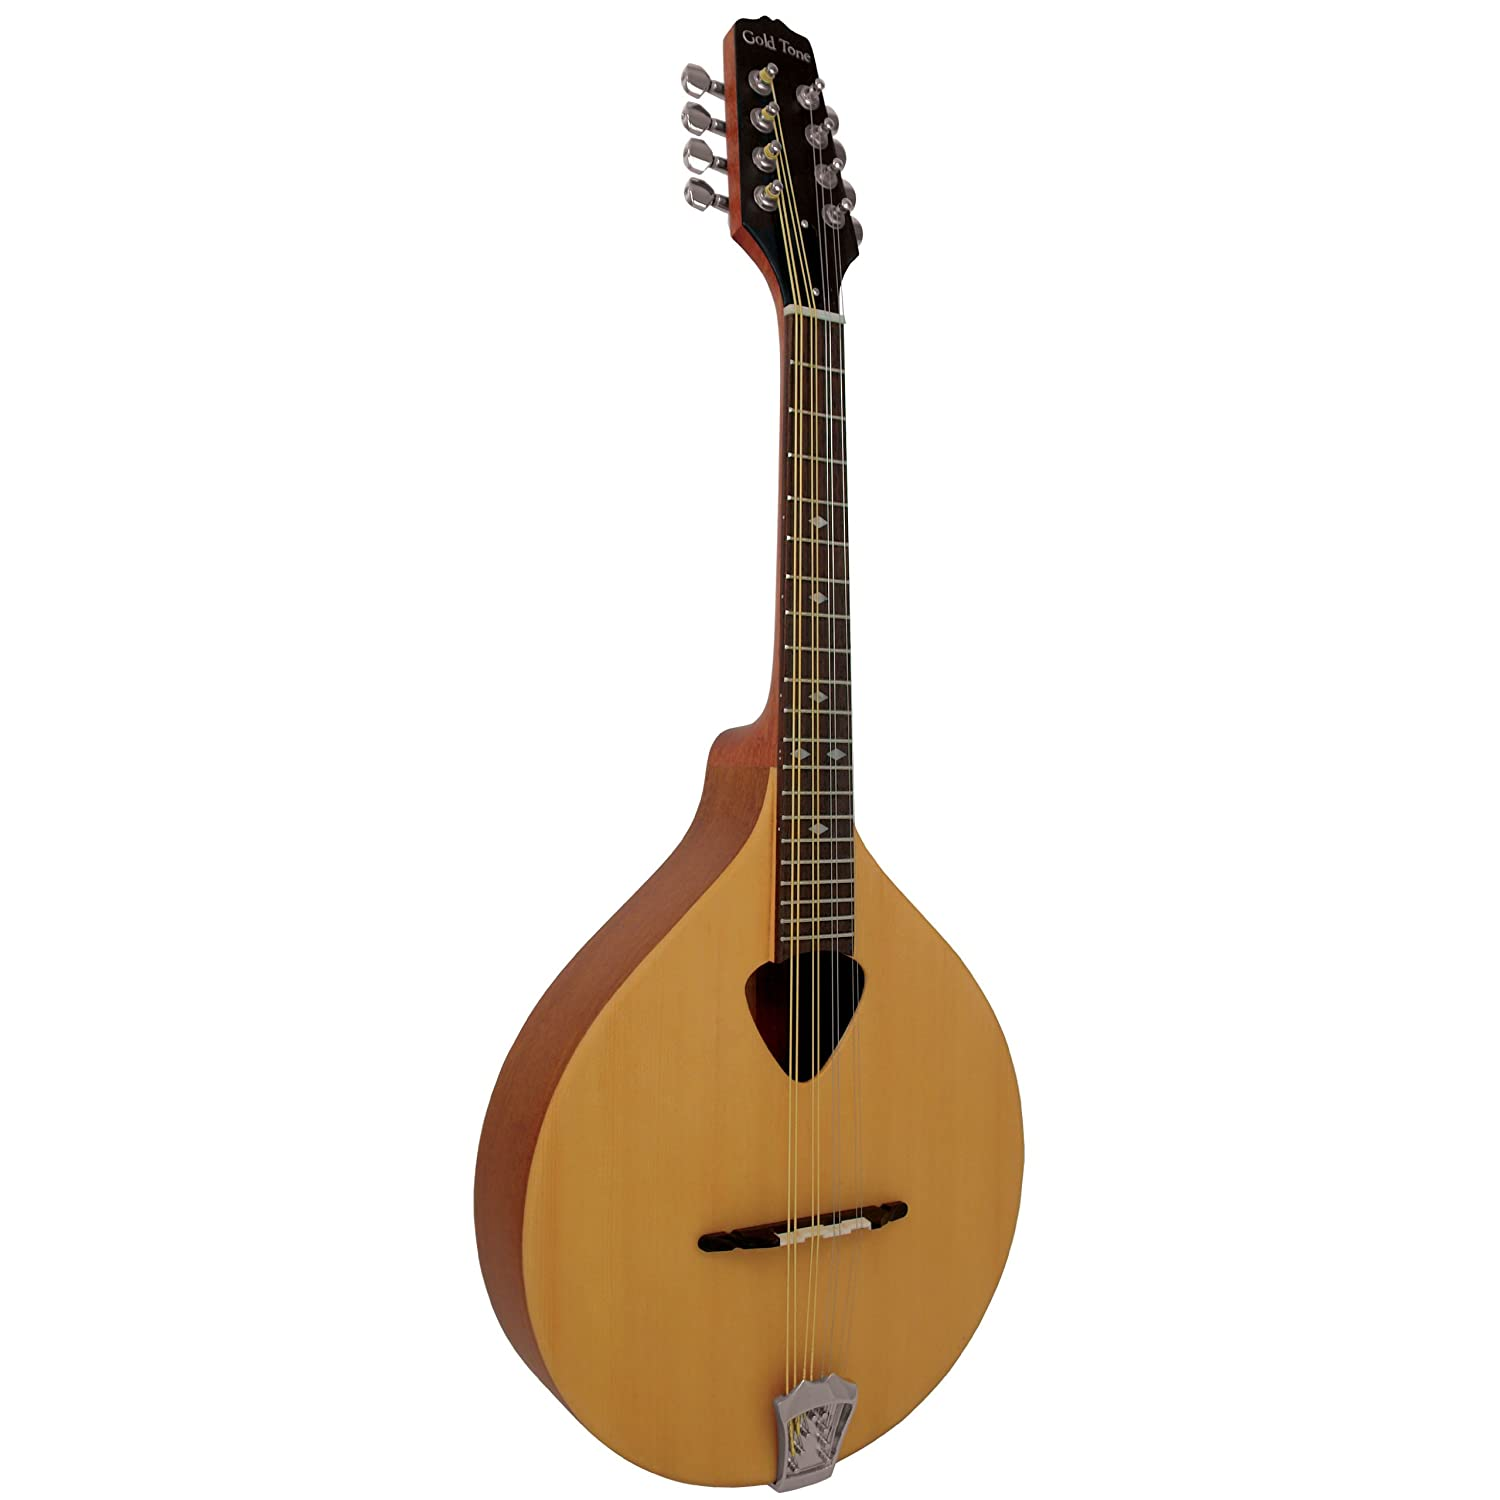 stringed instrument list - DriverLayer Search Engine